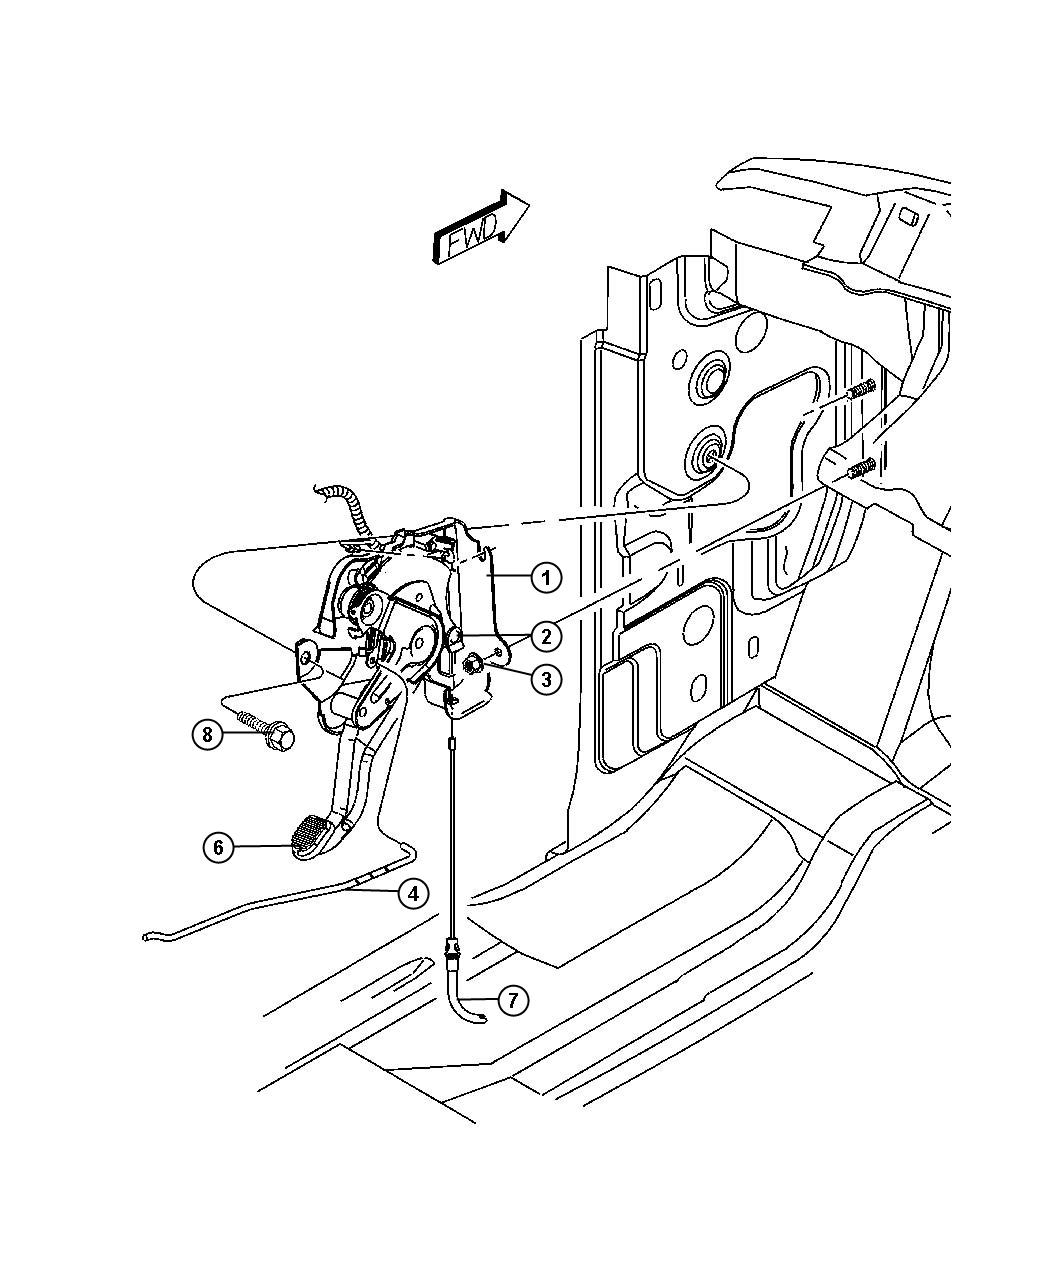 Chrysler 200 Cable Front Parking Brake With